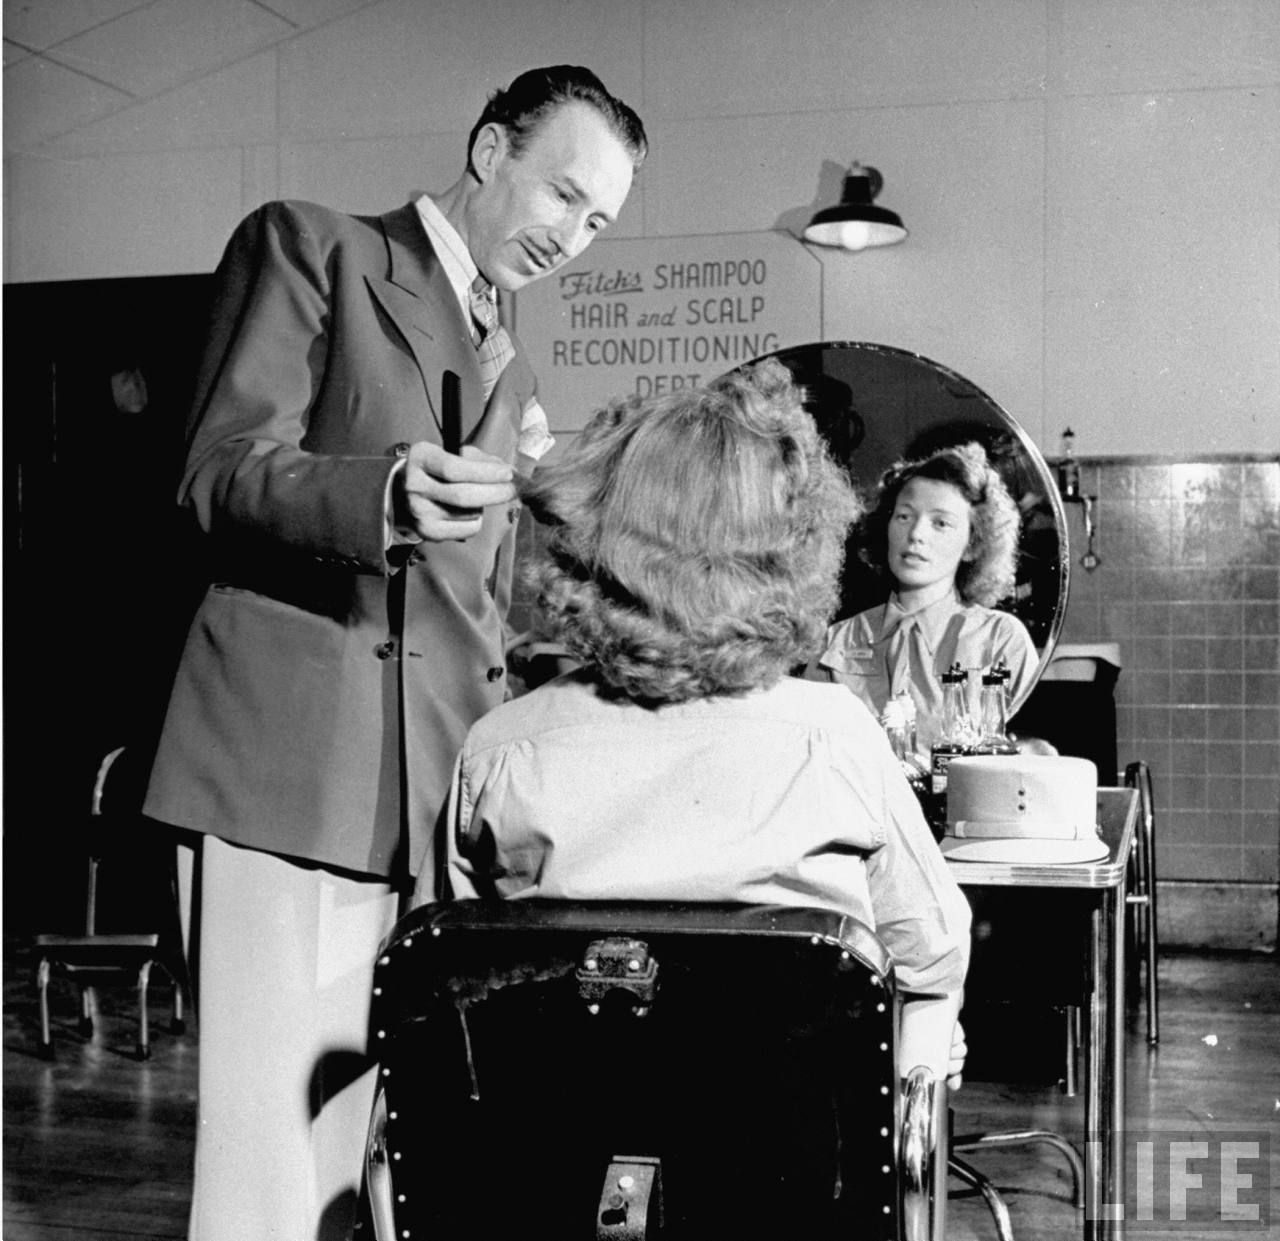 WAC Haircut, Fort Des Moines, 1942 | WWII | Pinterest